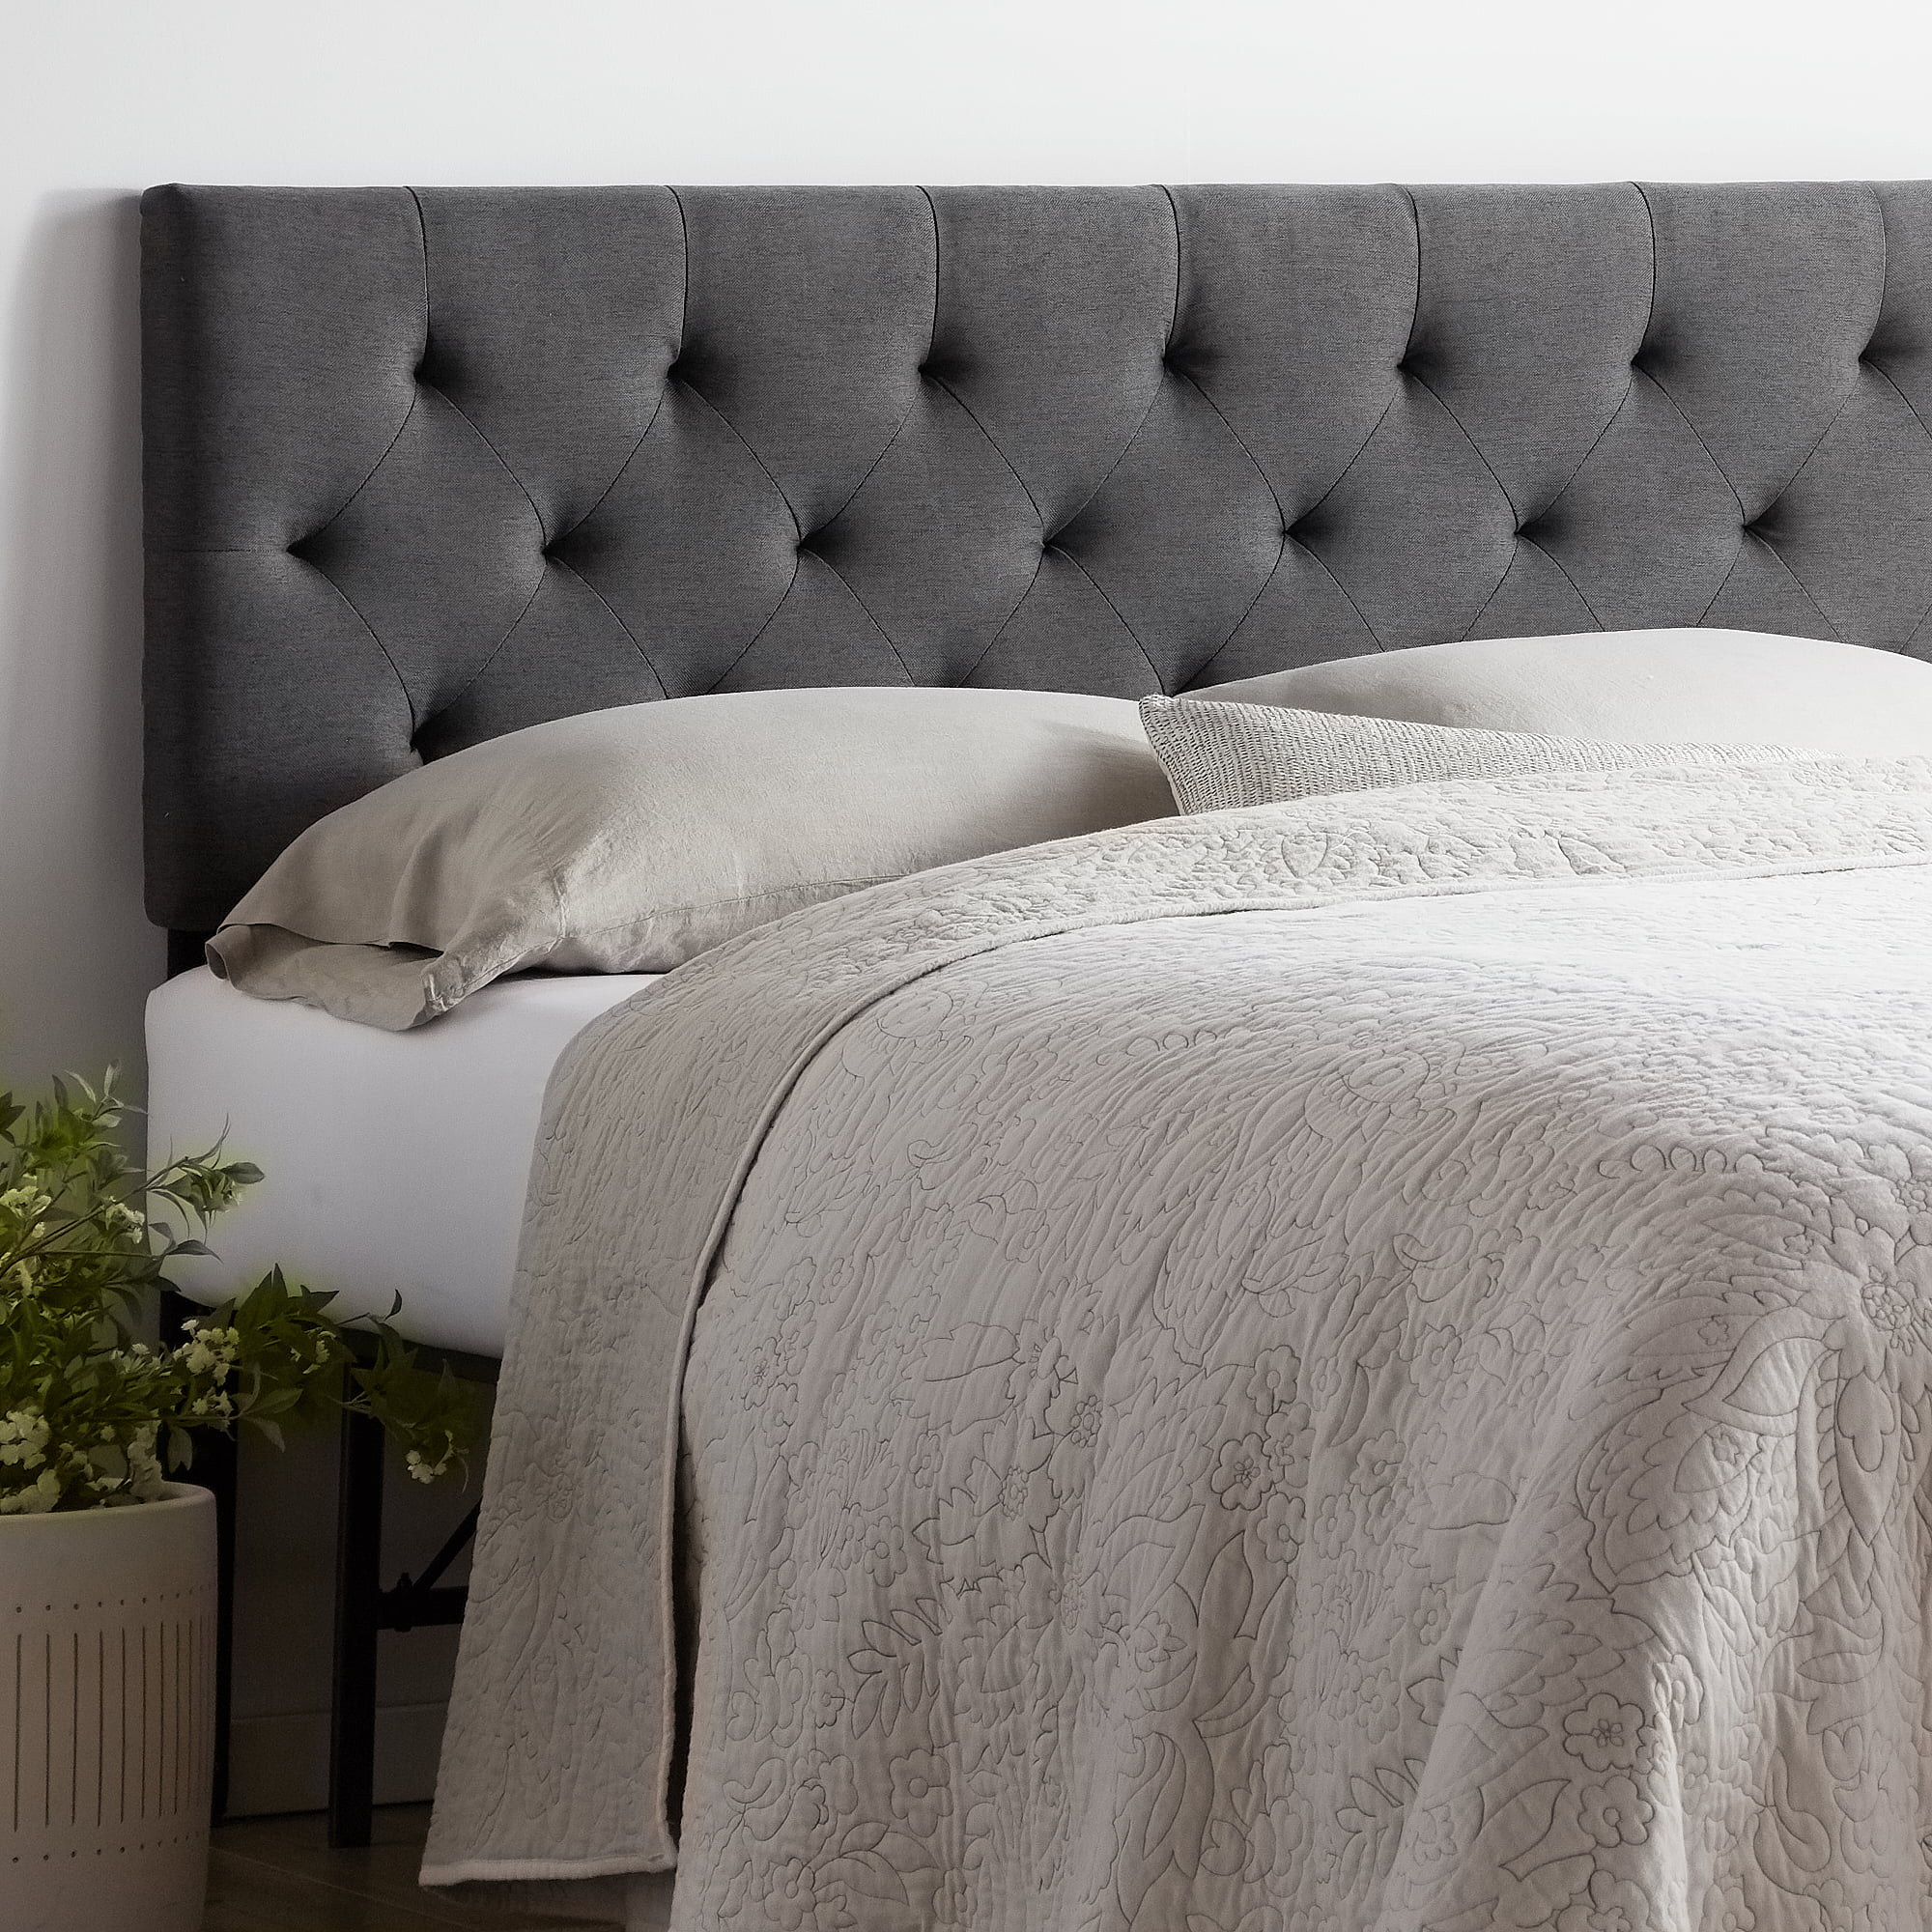 rest haven upholstered diamond tufted mid rise headboard queen charcoal